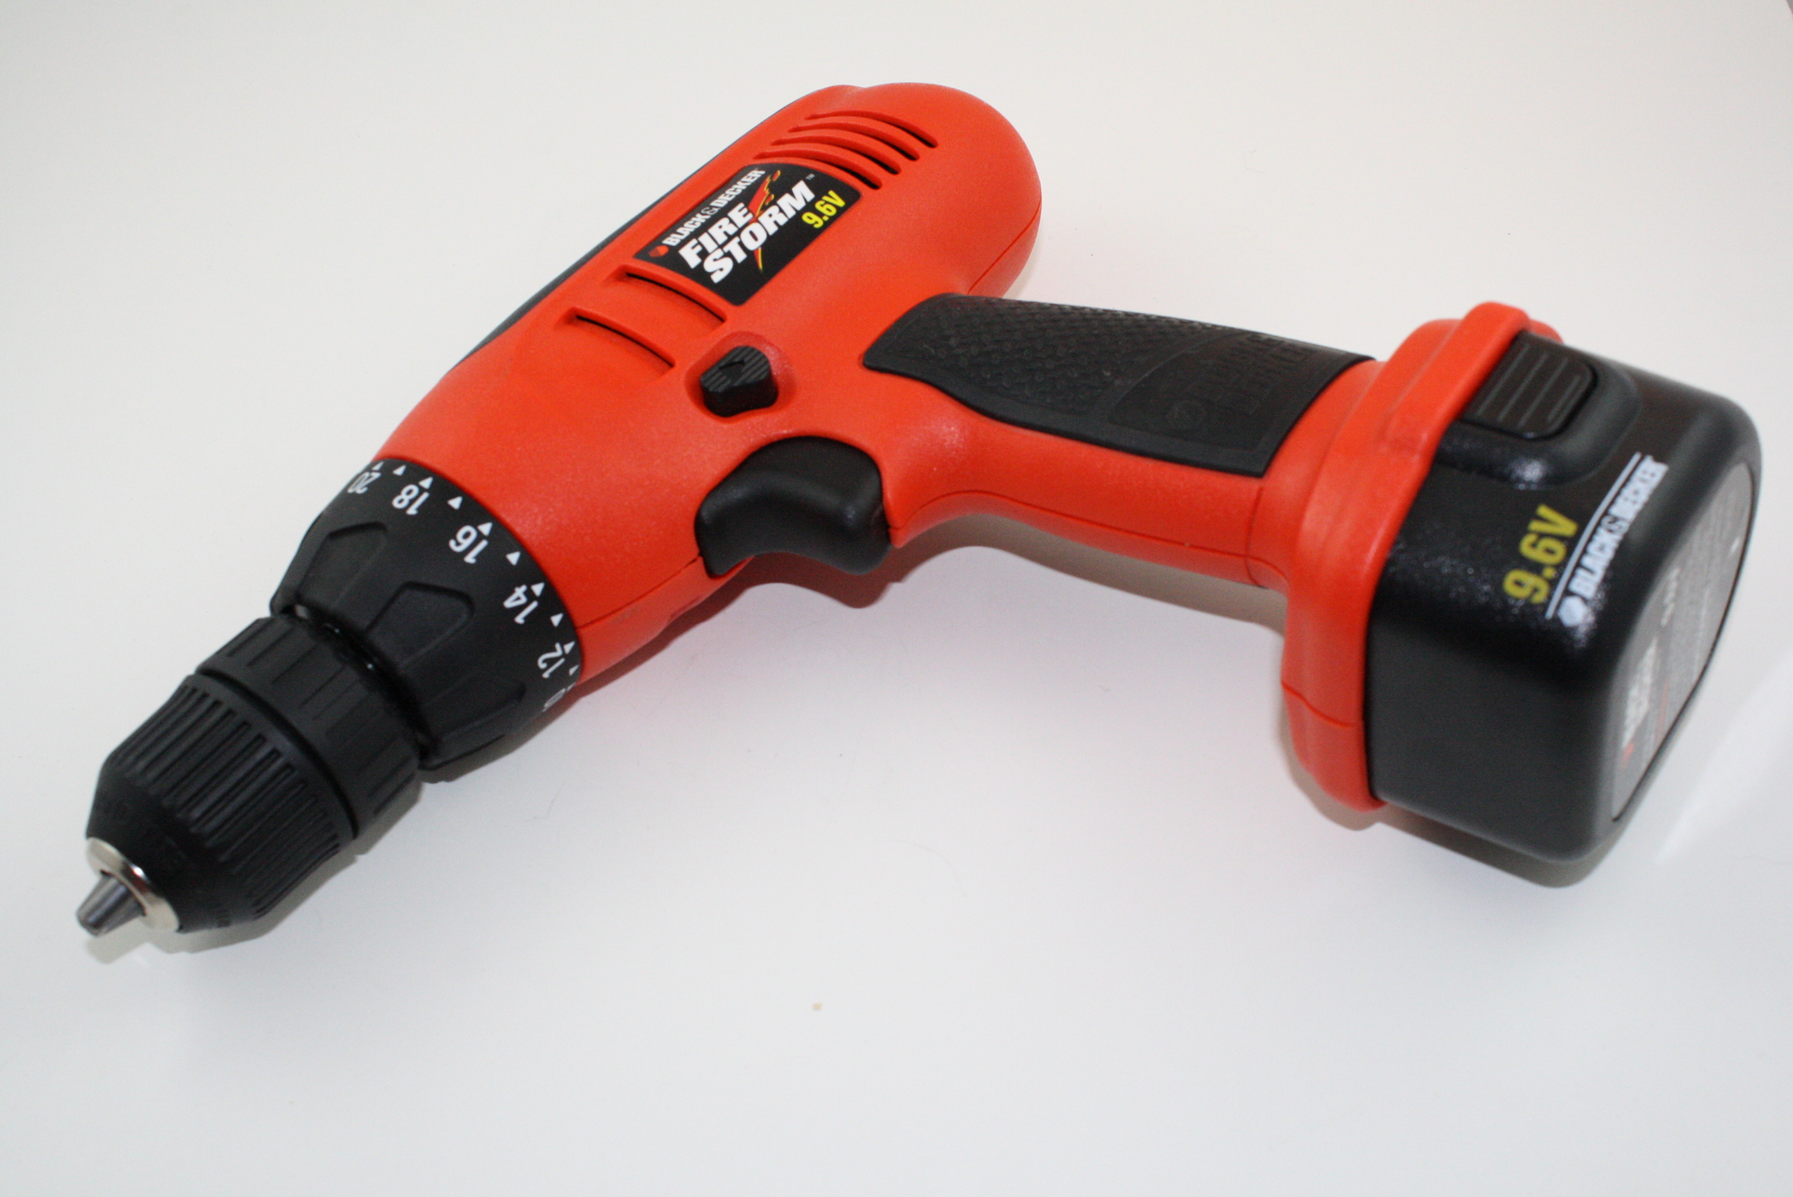 19 Tools You Need To Start Working With Electronics Oreilly Media Temperature Status Indicator Circuit And Hacked Hot Glue Gun Cordless Hand Drill